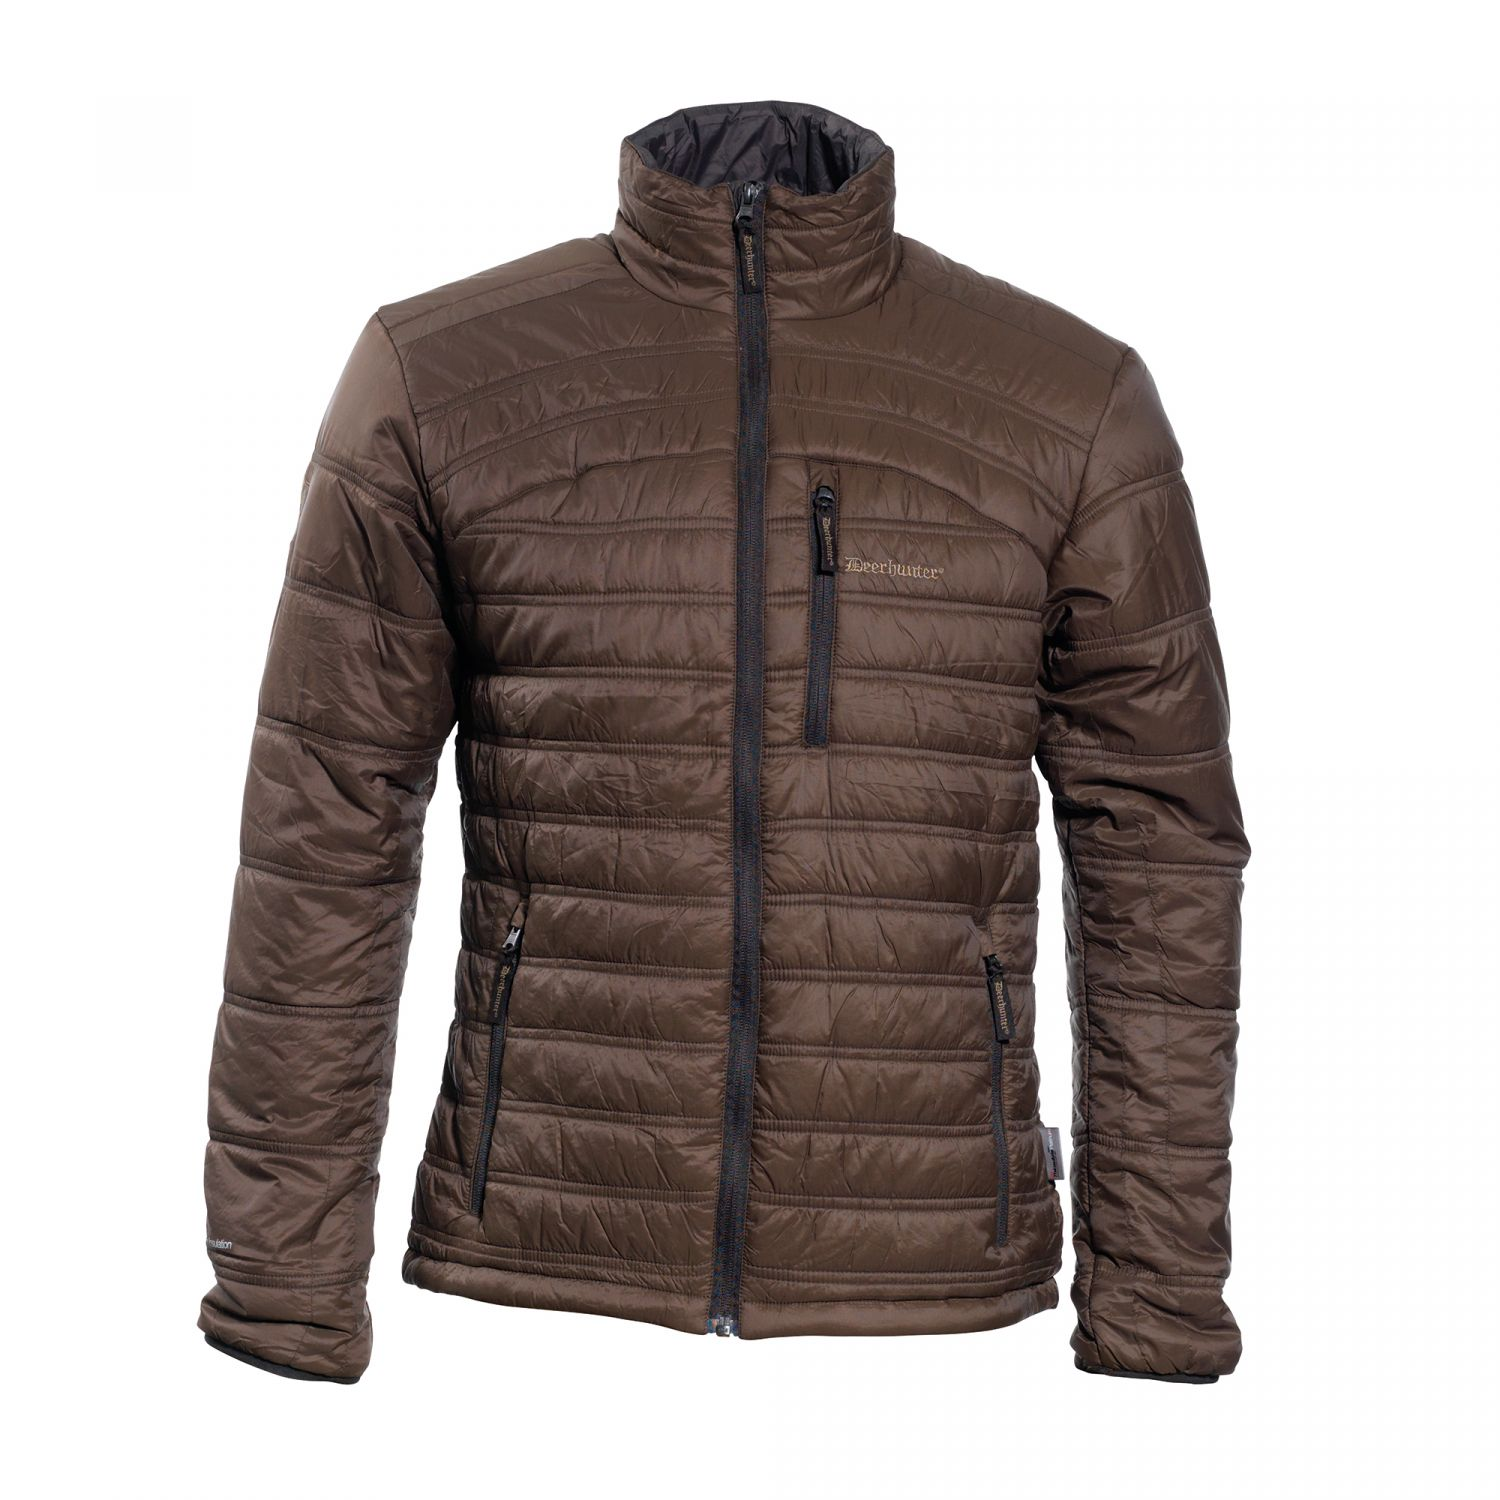 Deerhunter Verdun Jacket (5411)